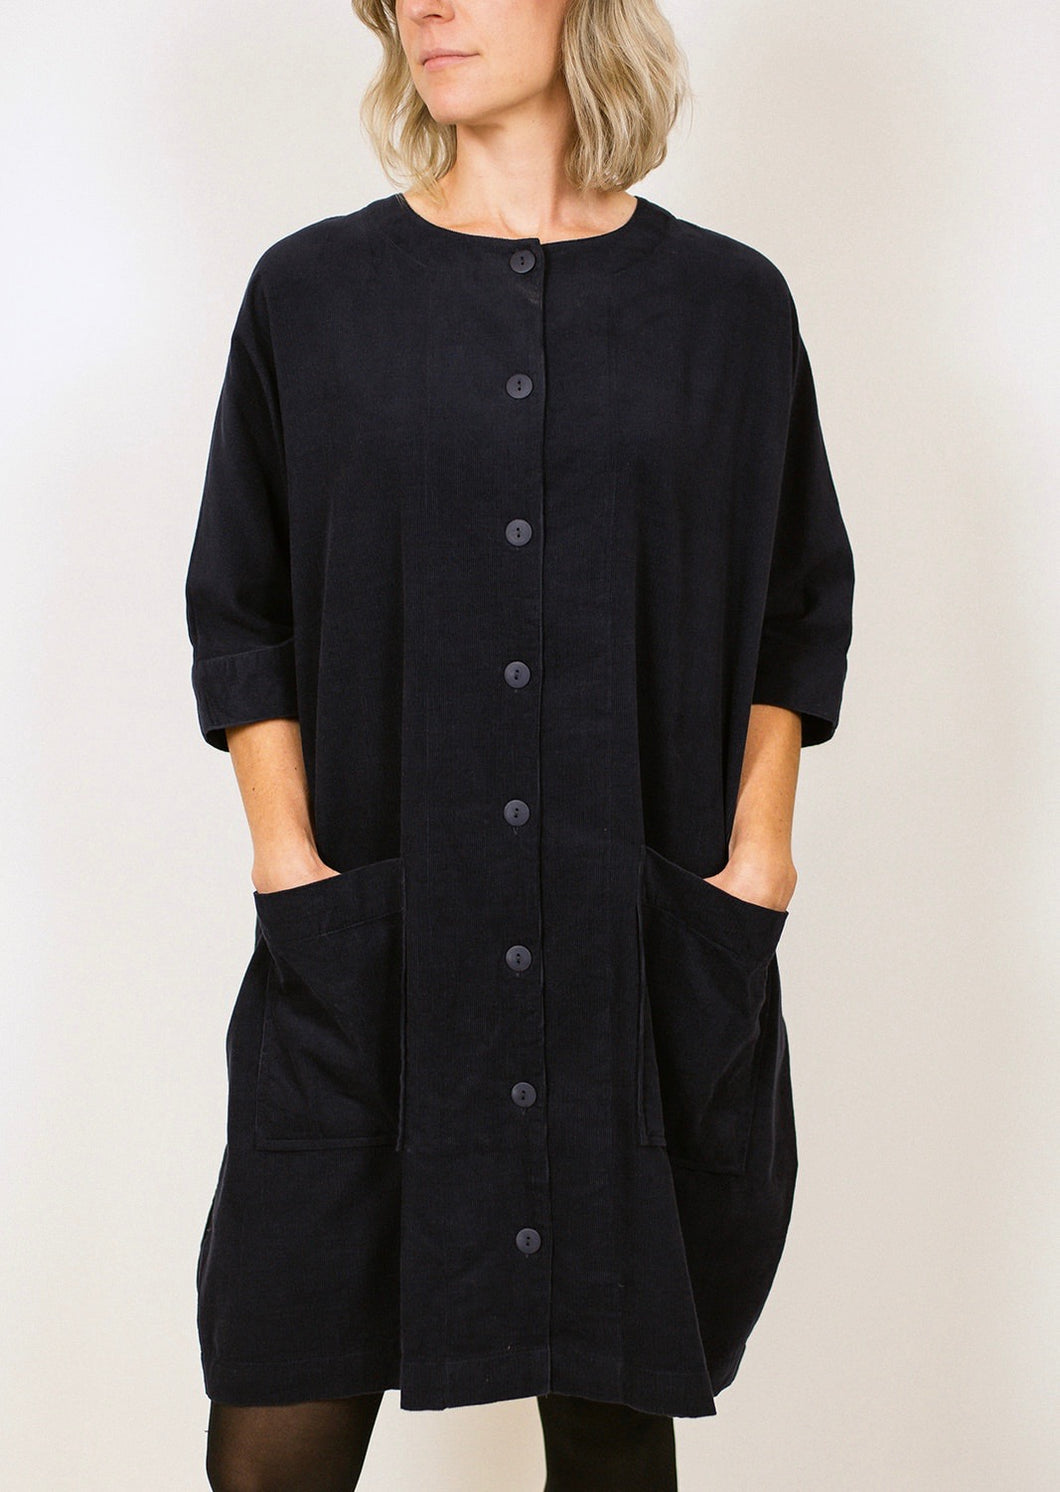 Corin Corduroy Dress - Navy